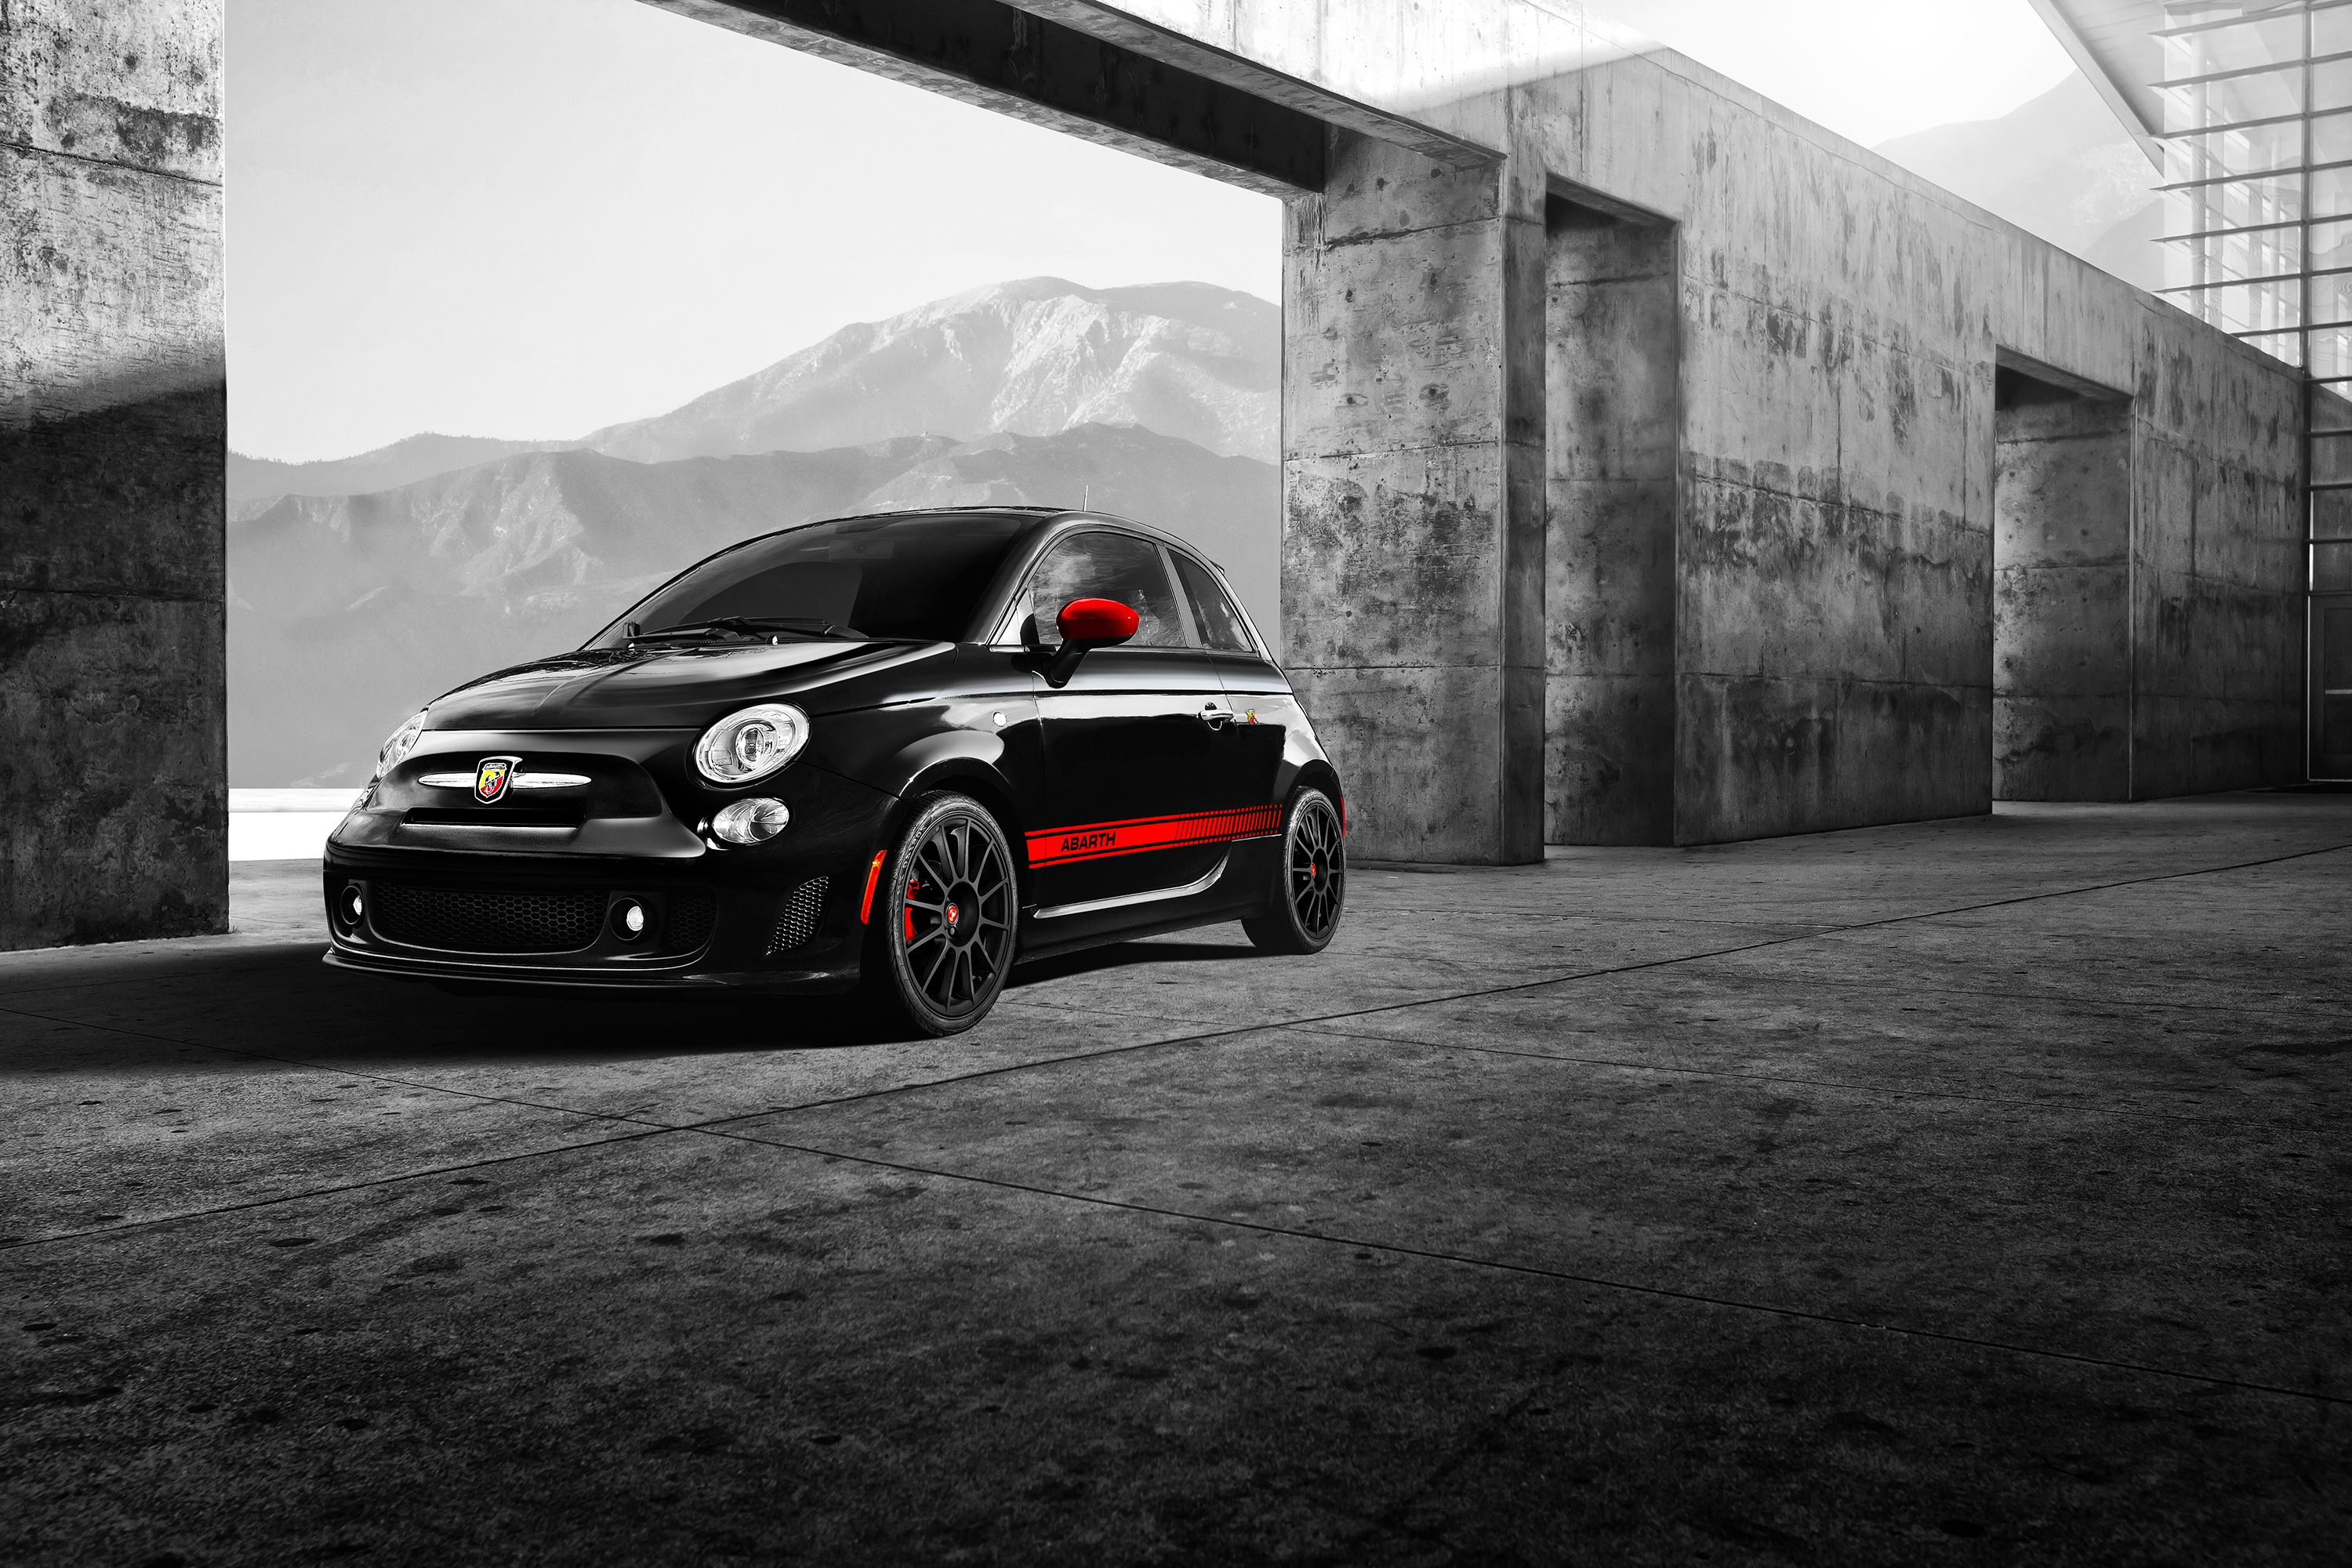 2019 Fiat 500 Abarth Review Pricing And Specs